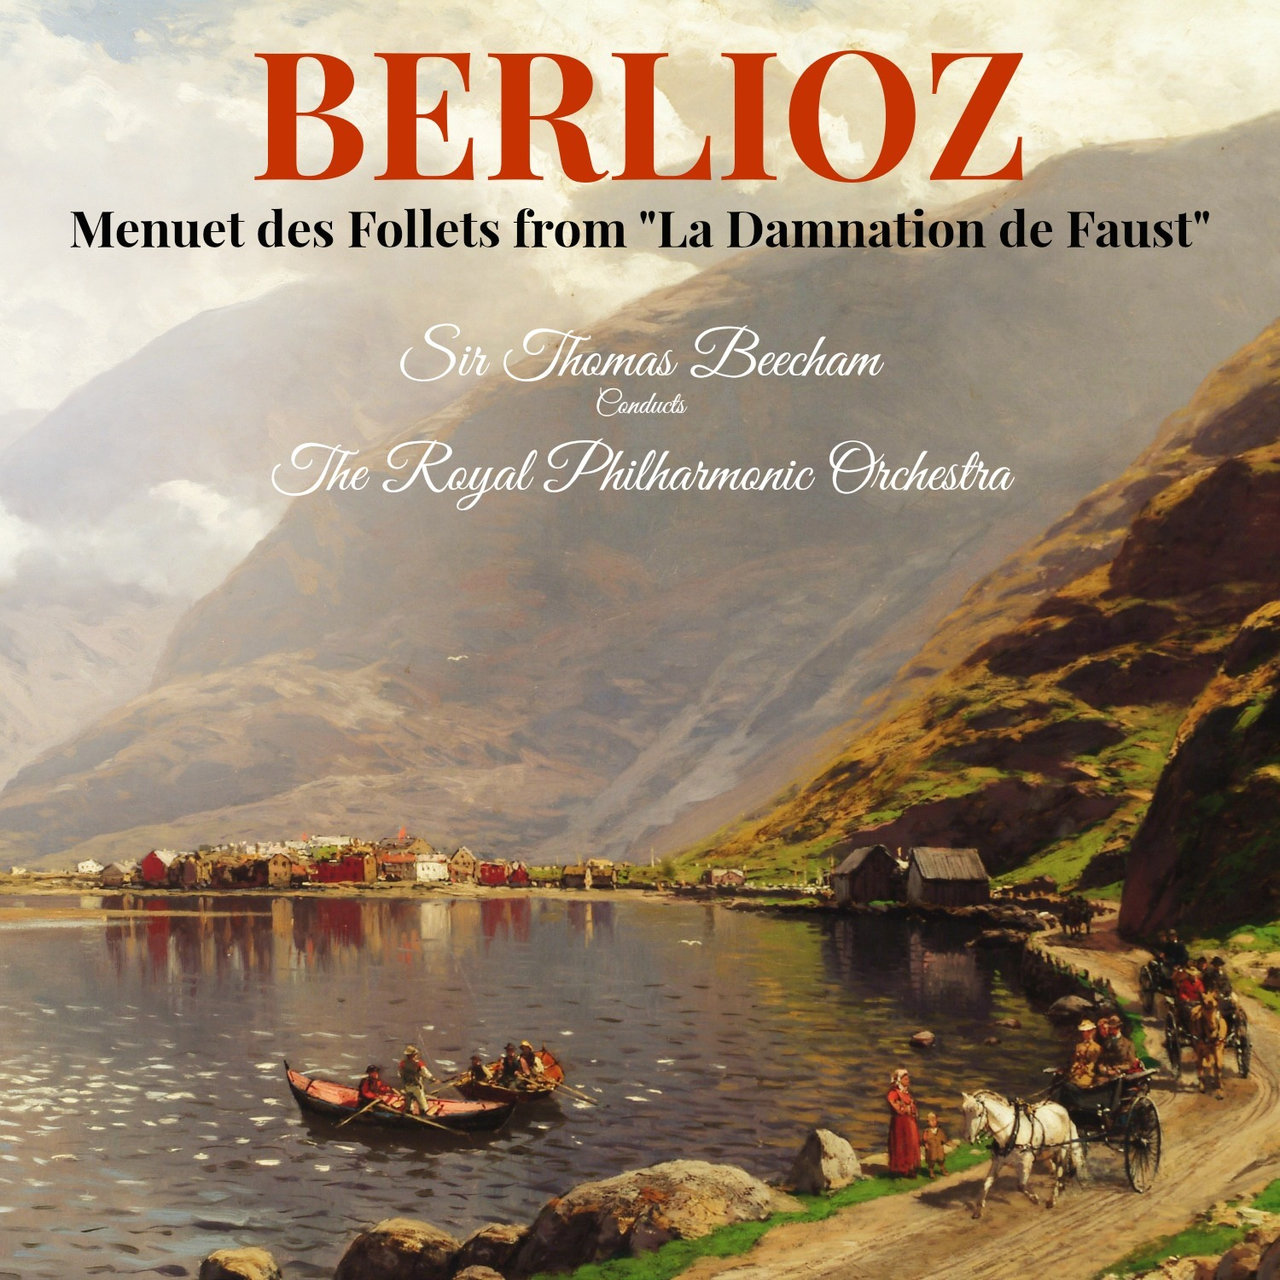 Berlioz: Menuet des Follets from